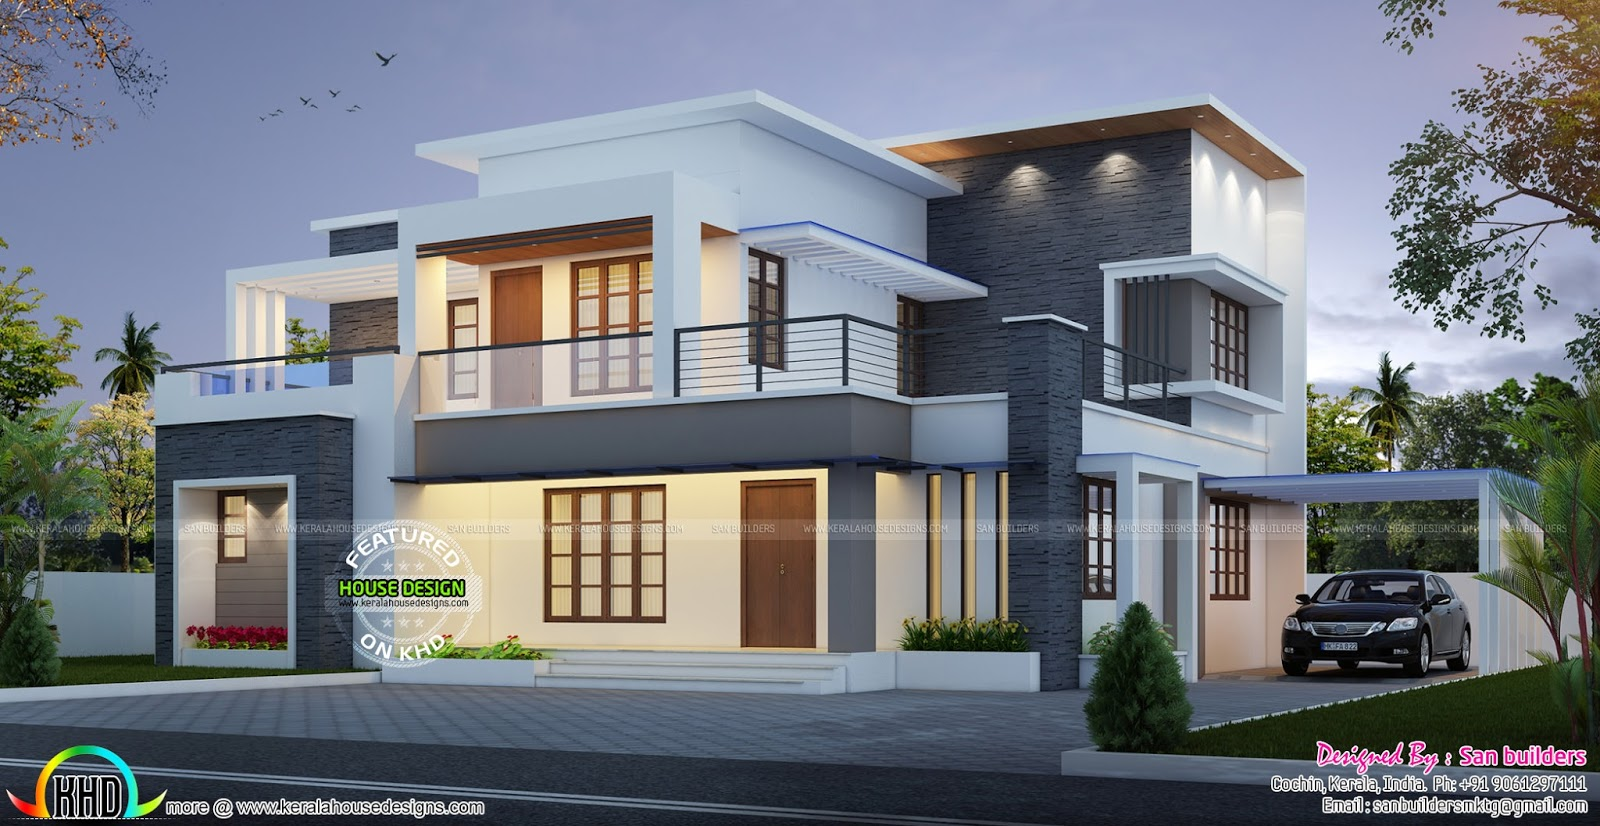 Elevation Plan For Home : House plan and elevation by san builders kerala home